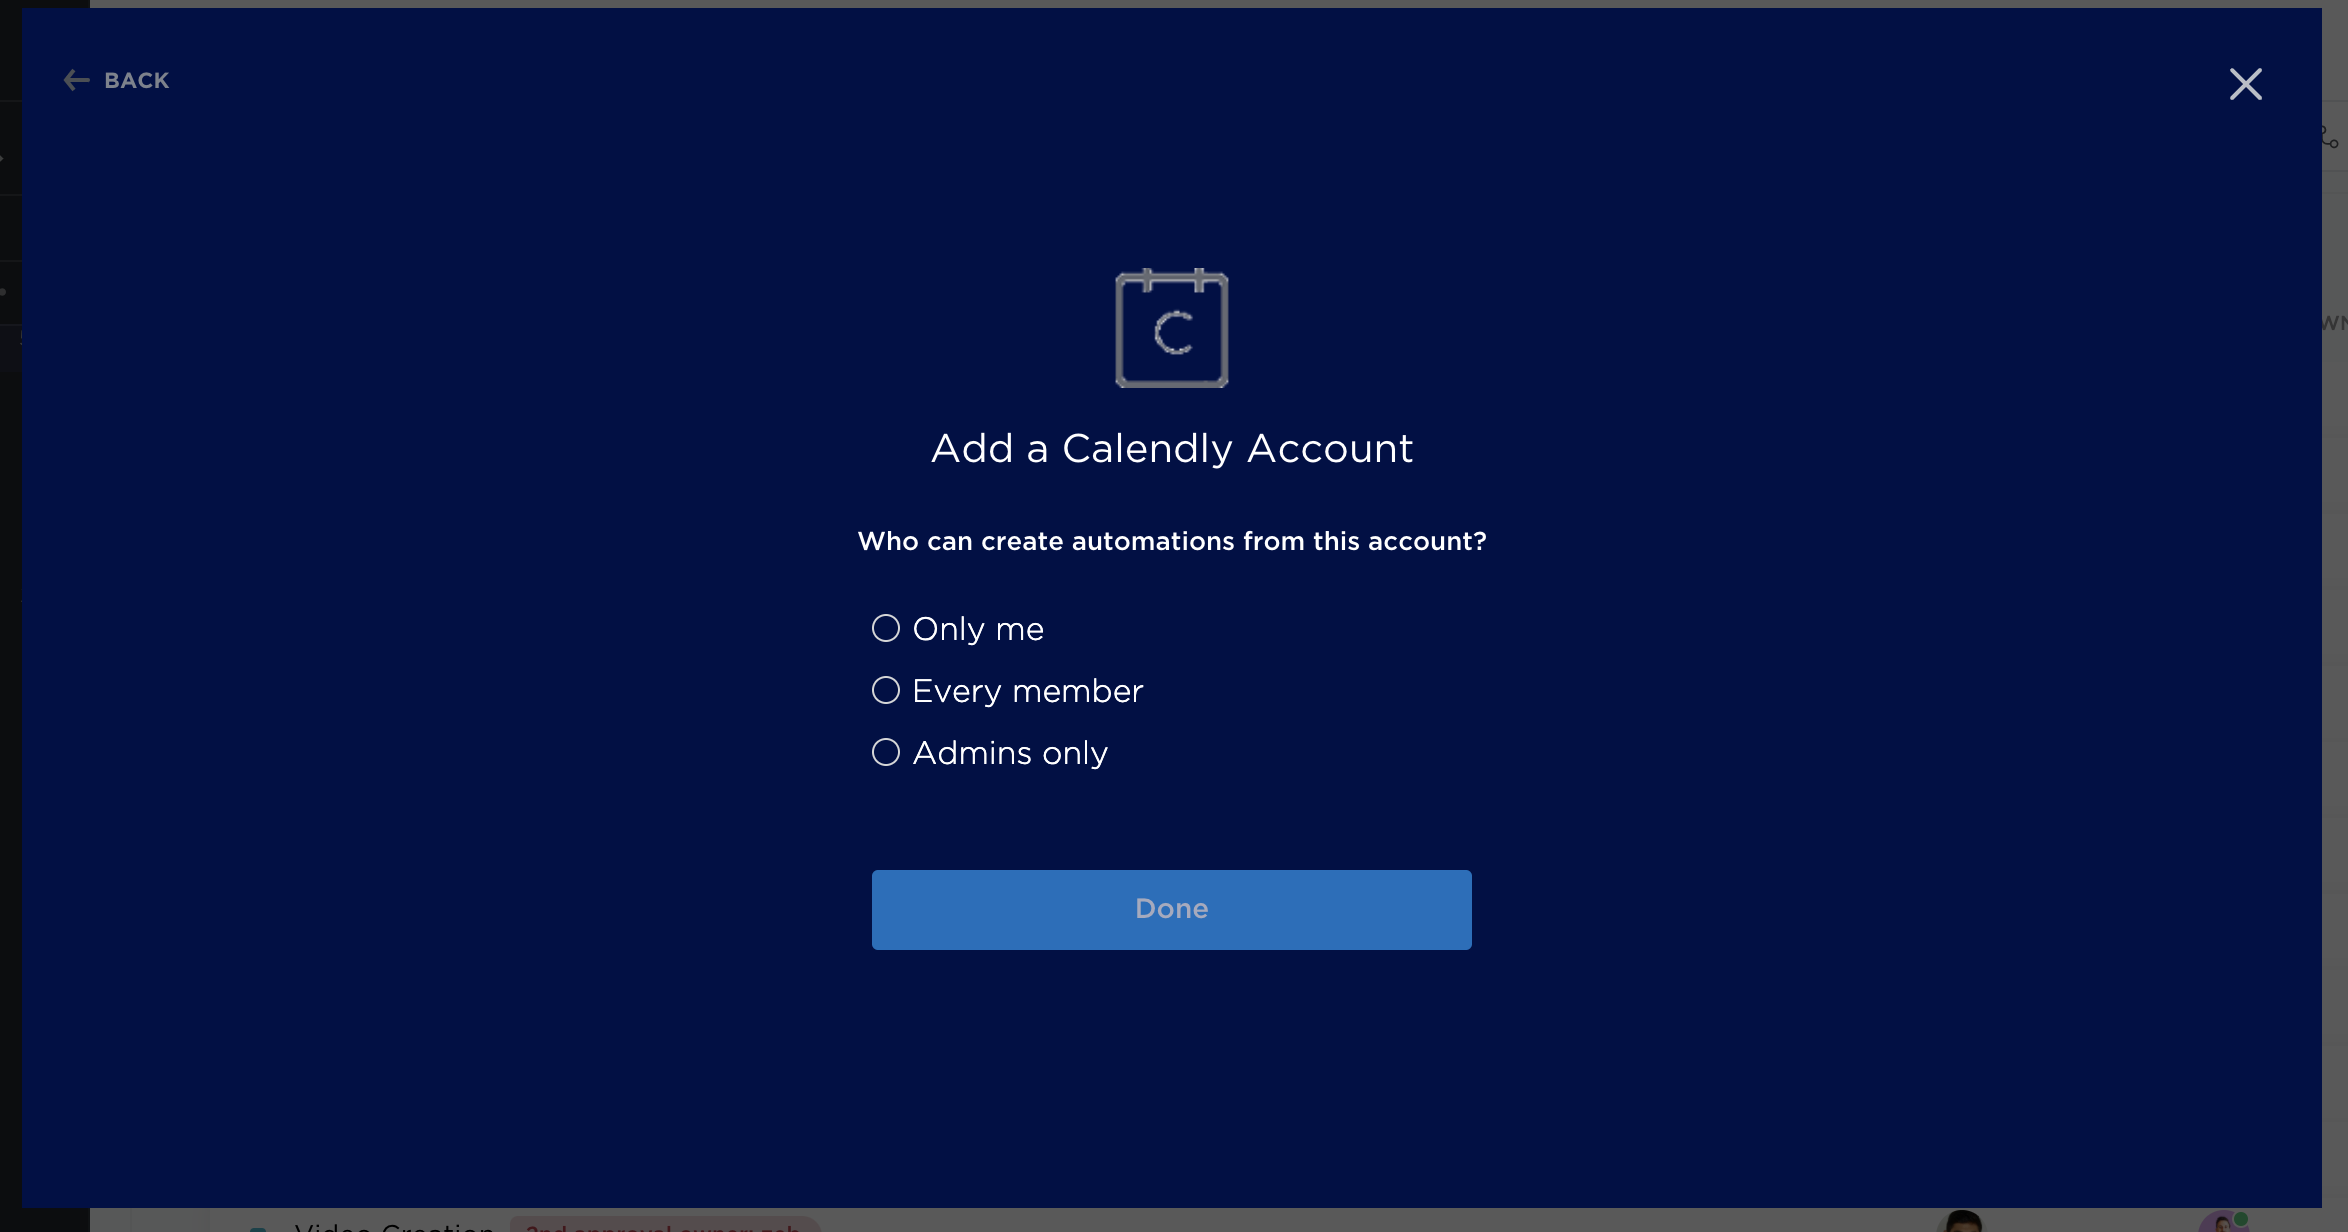 A photo showing who can create automations from your Calendly account